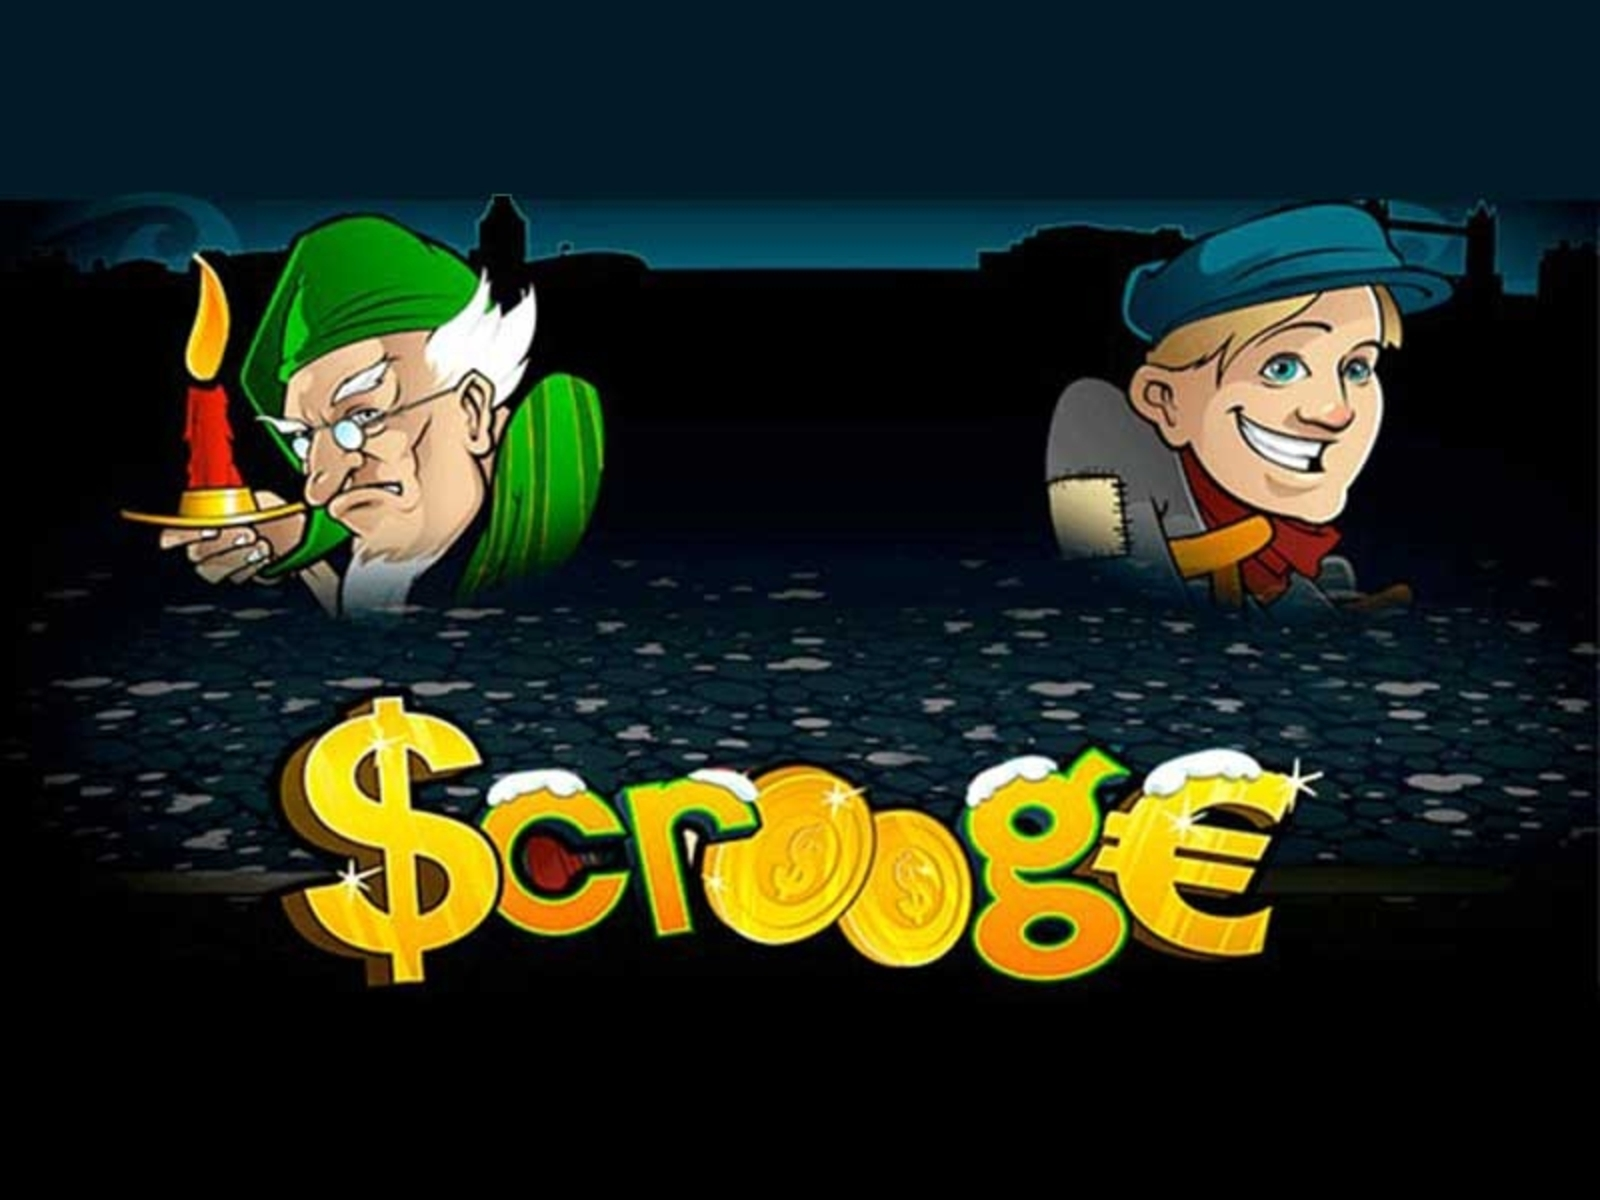 Scrooge (Microgaming) Online Slot Demo Game by Microgaming